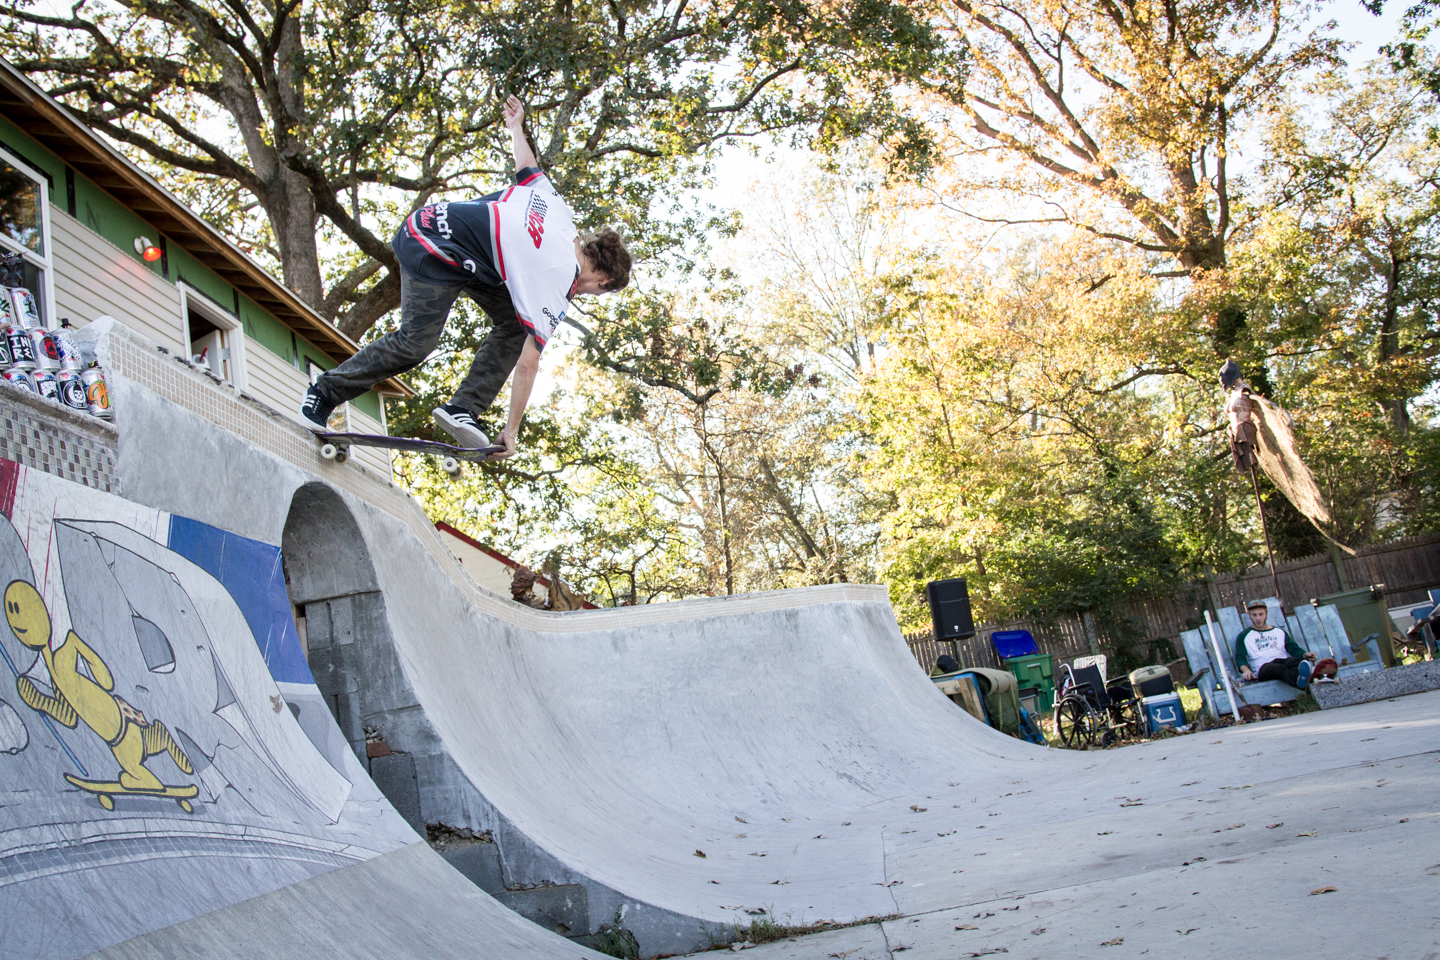 Some dude, back crail.